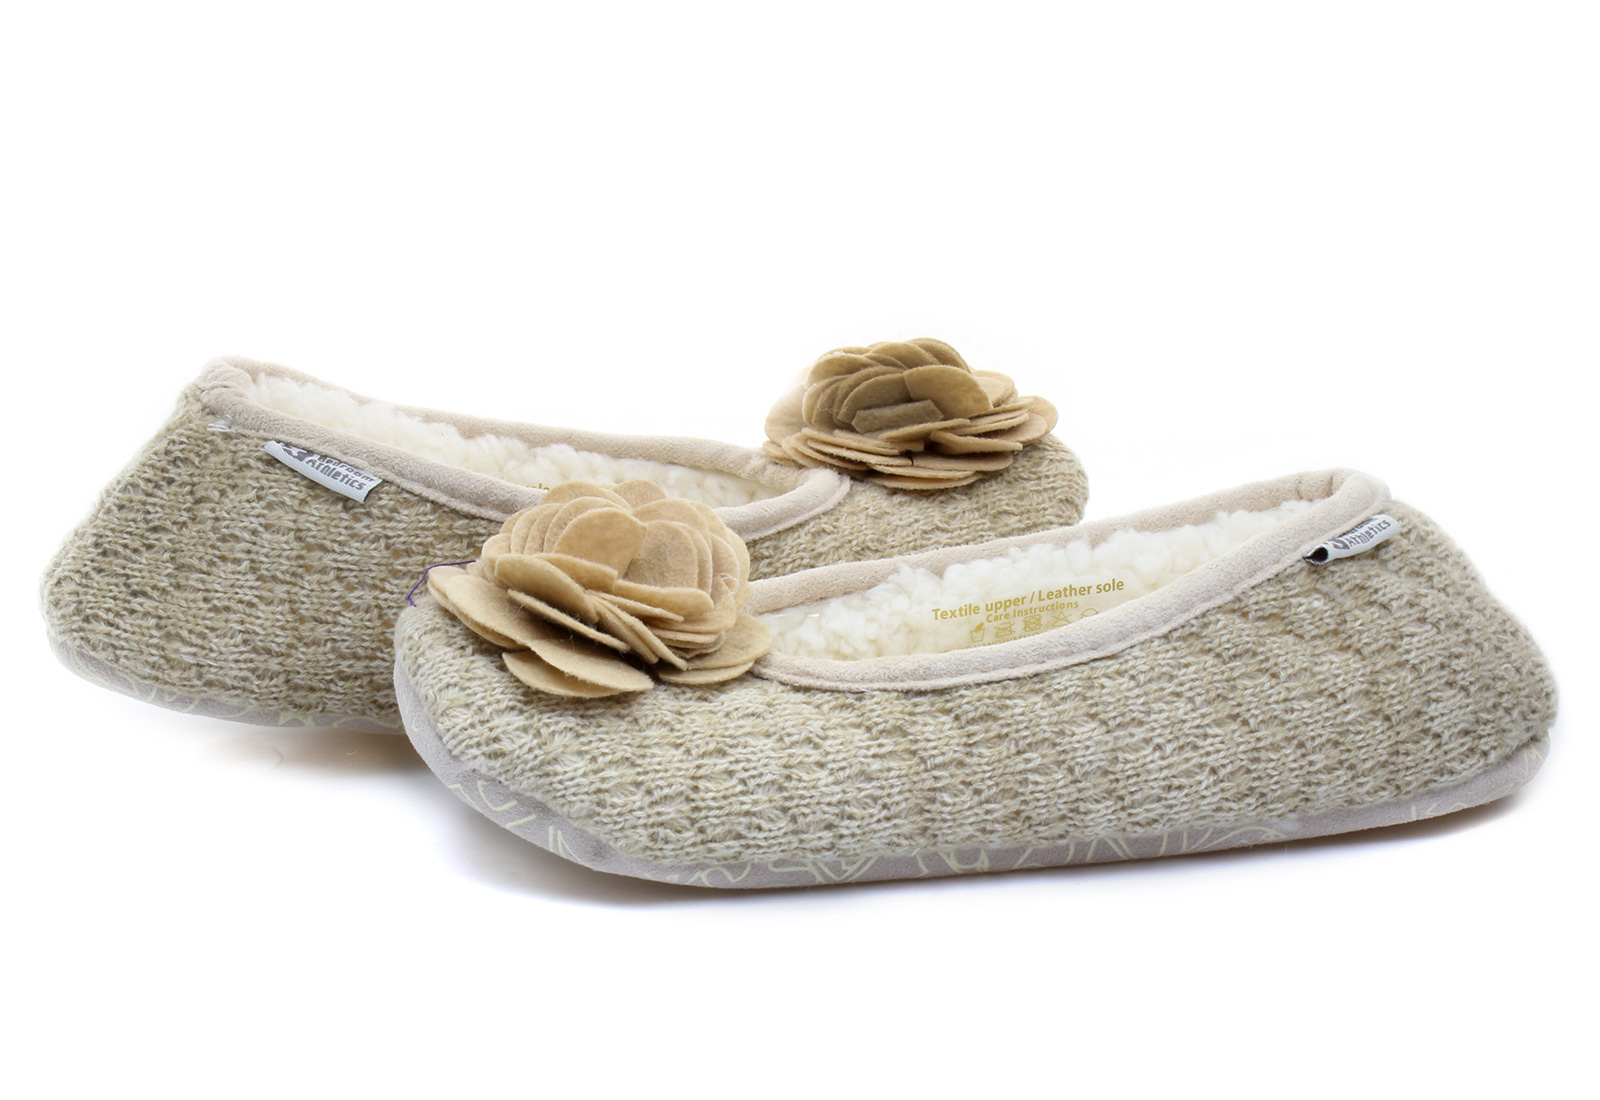 Bedroom Athletics Slippers Charlize 210 043 308 Online Shop For Sneakers Shoes And Boots